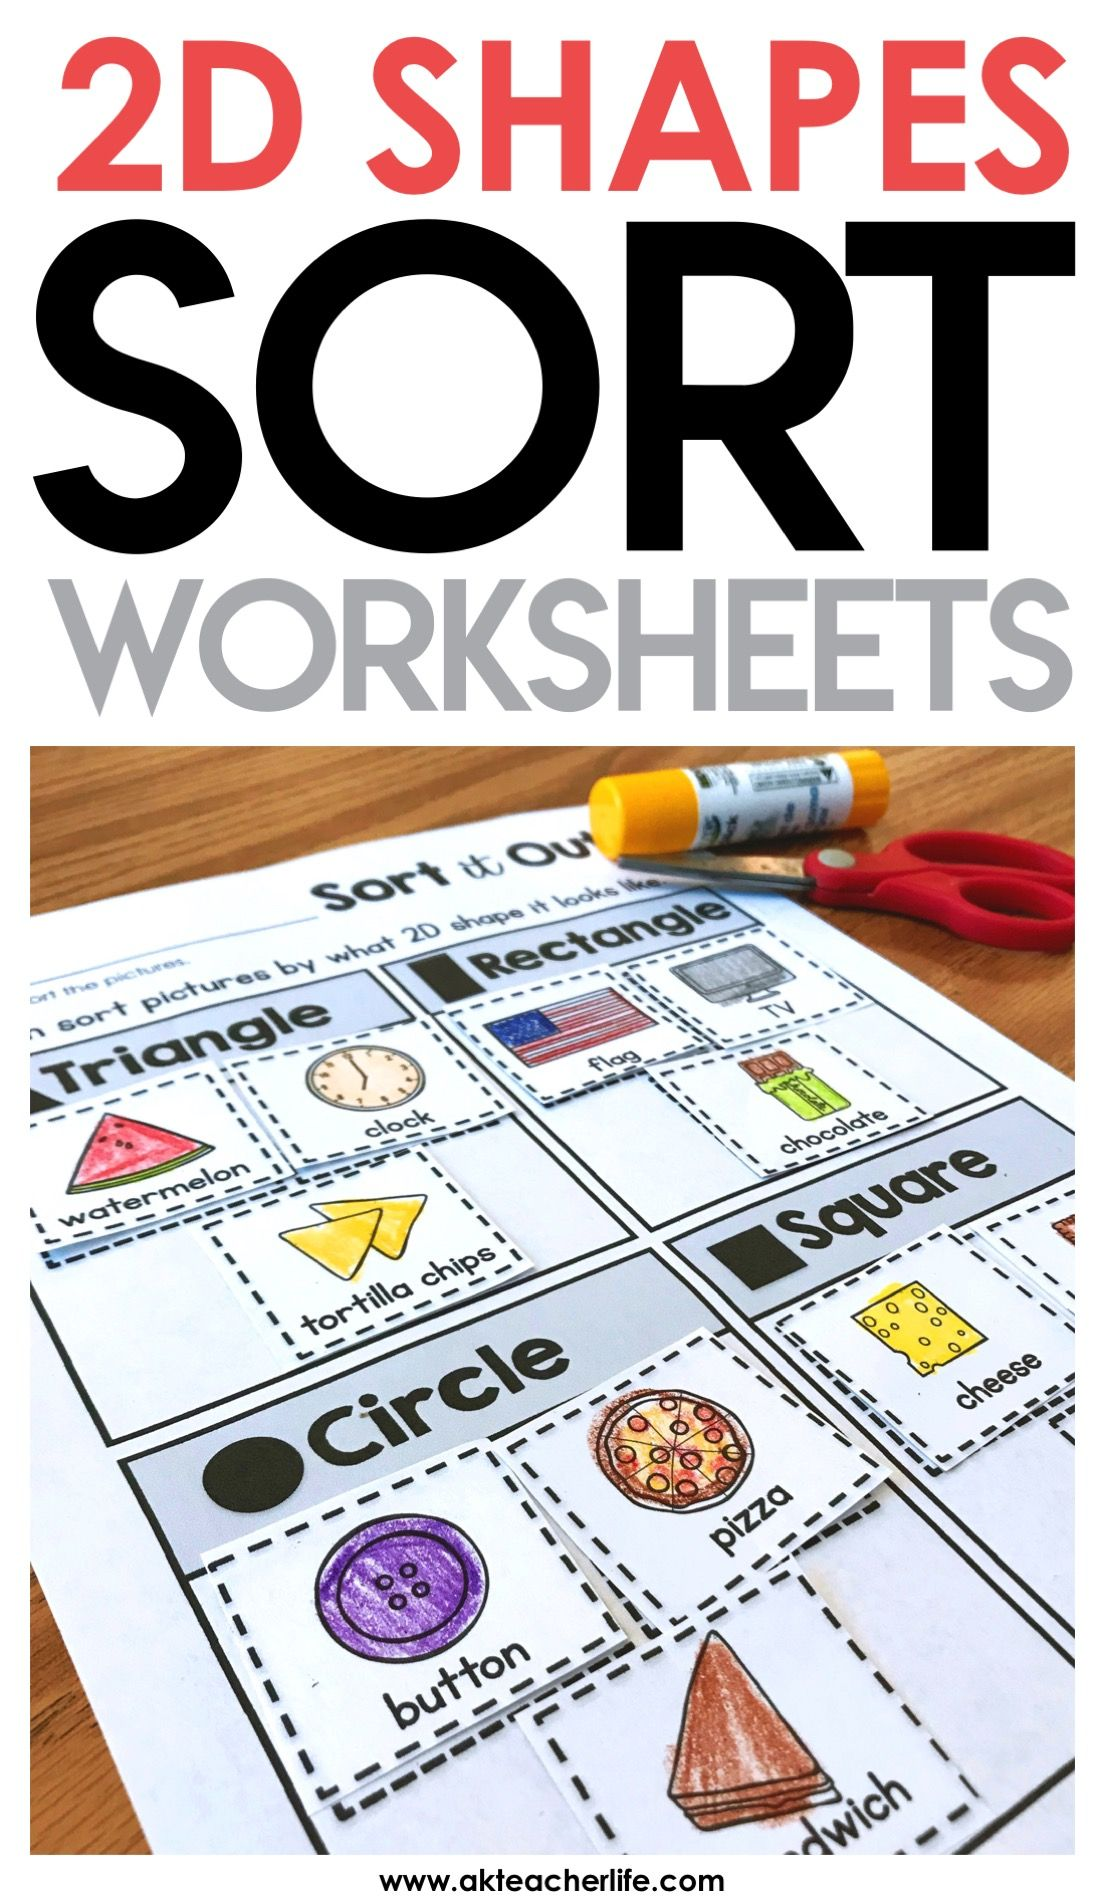 2d Shapes Sort Worksheet